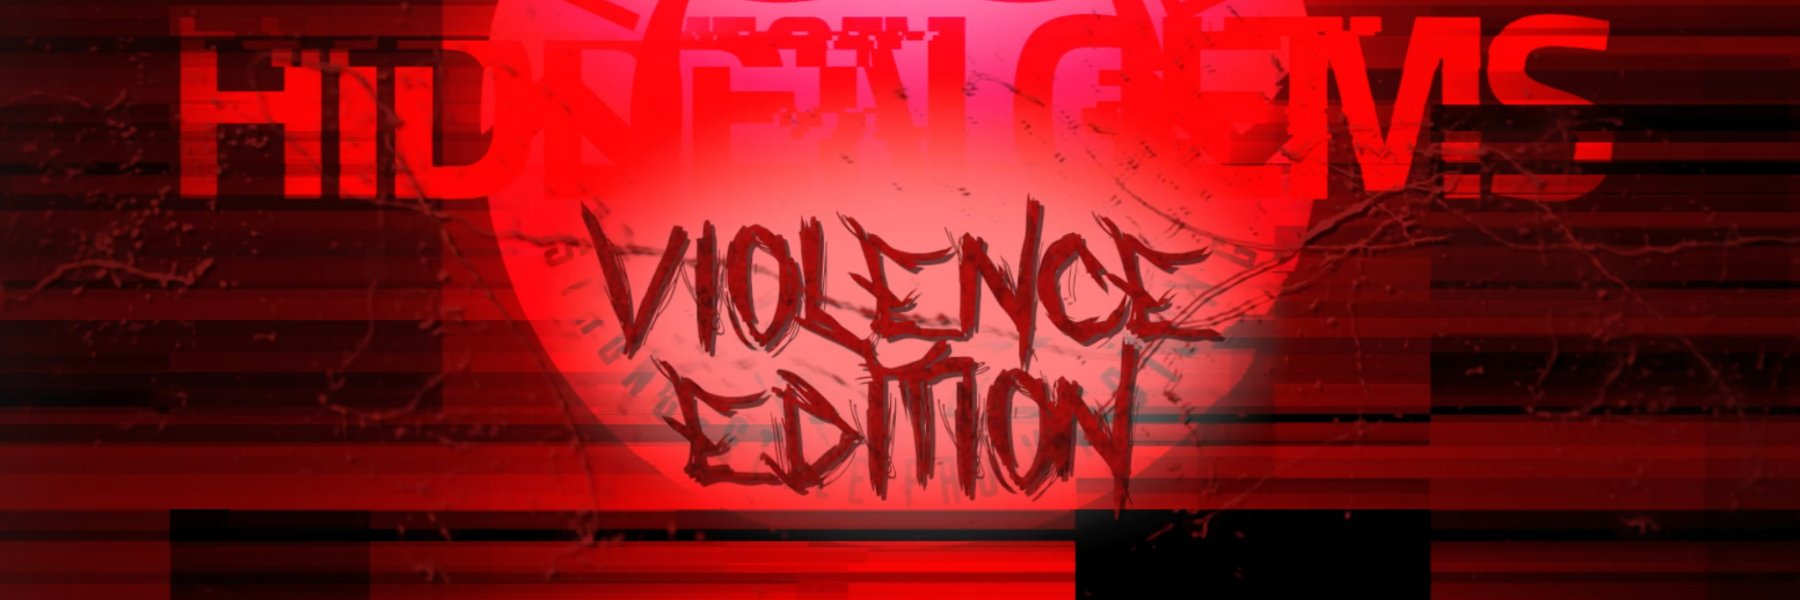 NEW - Hidden Gems Vol. 3: Violence Edition